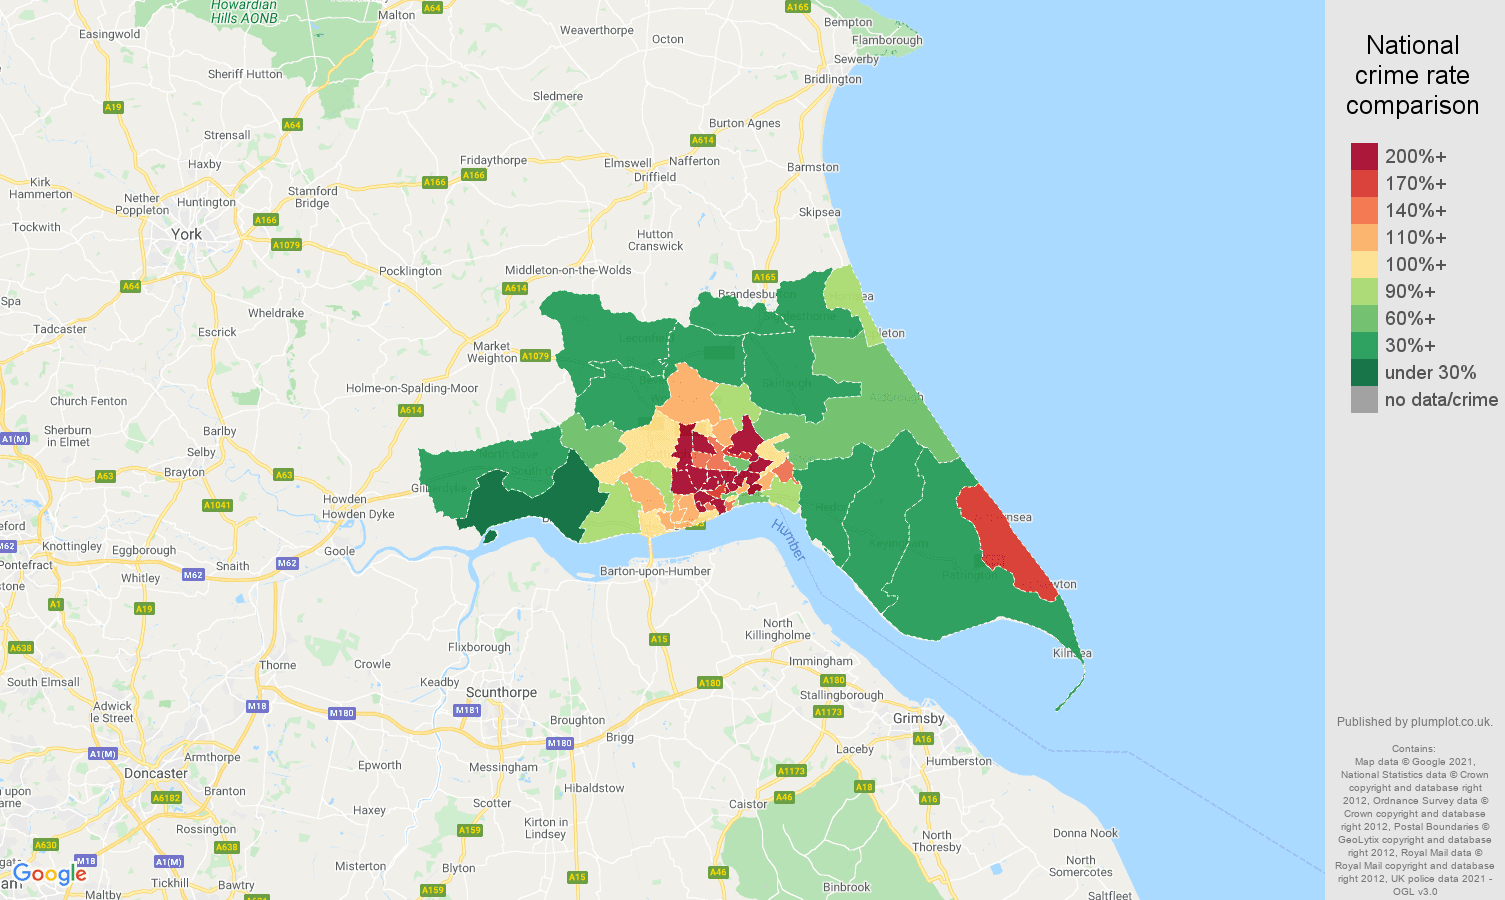 Hull burglary crime rate comparison map